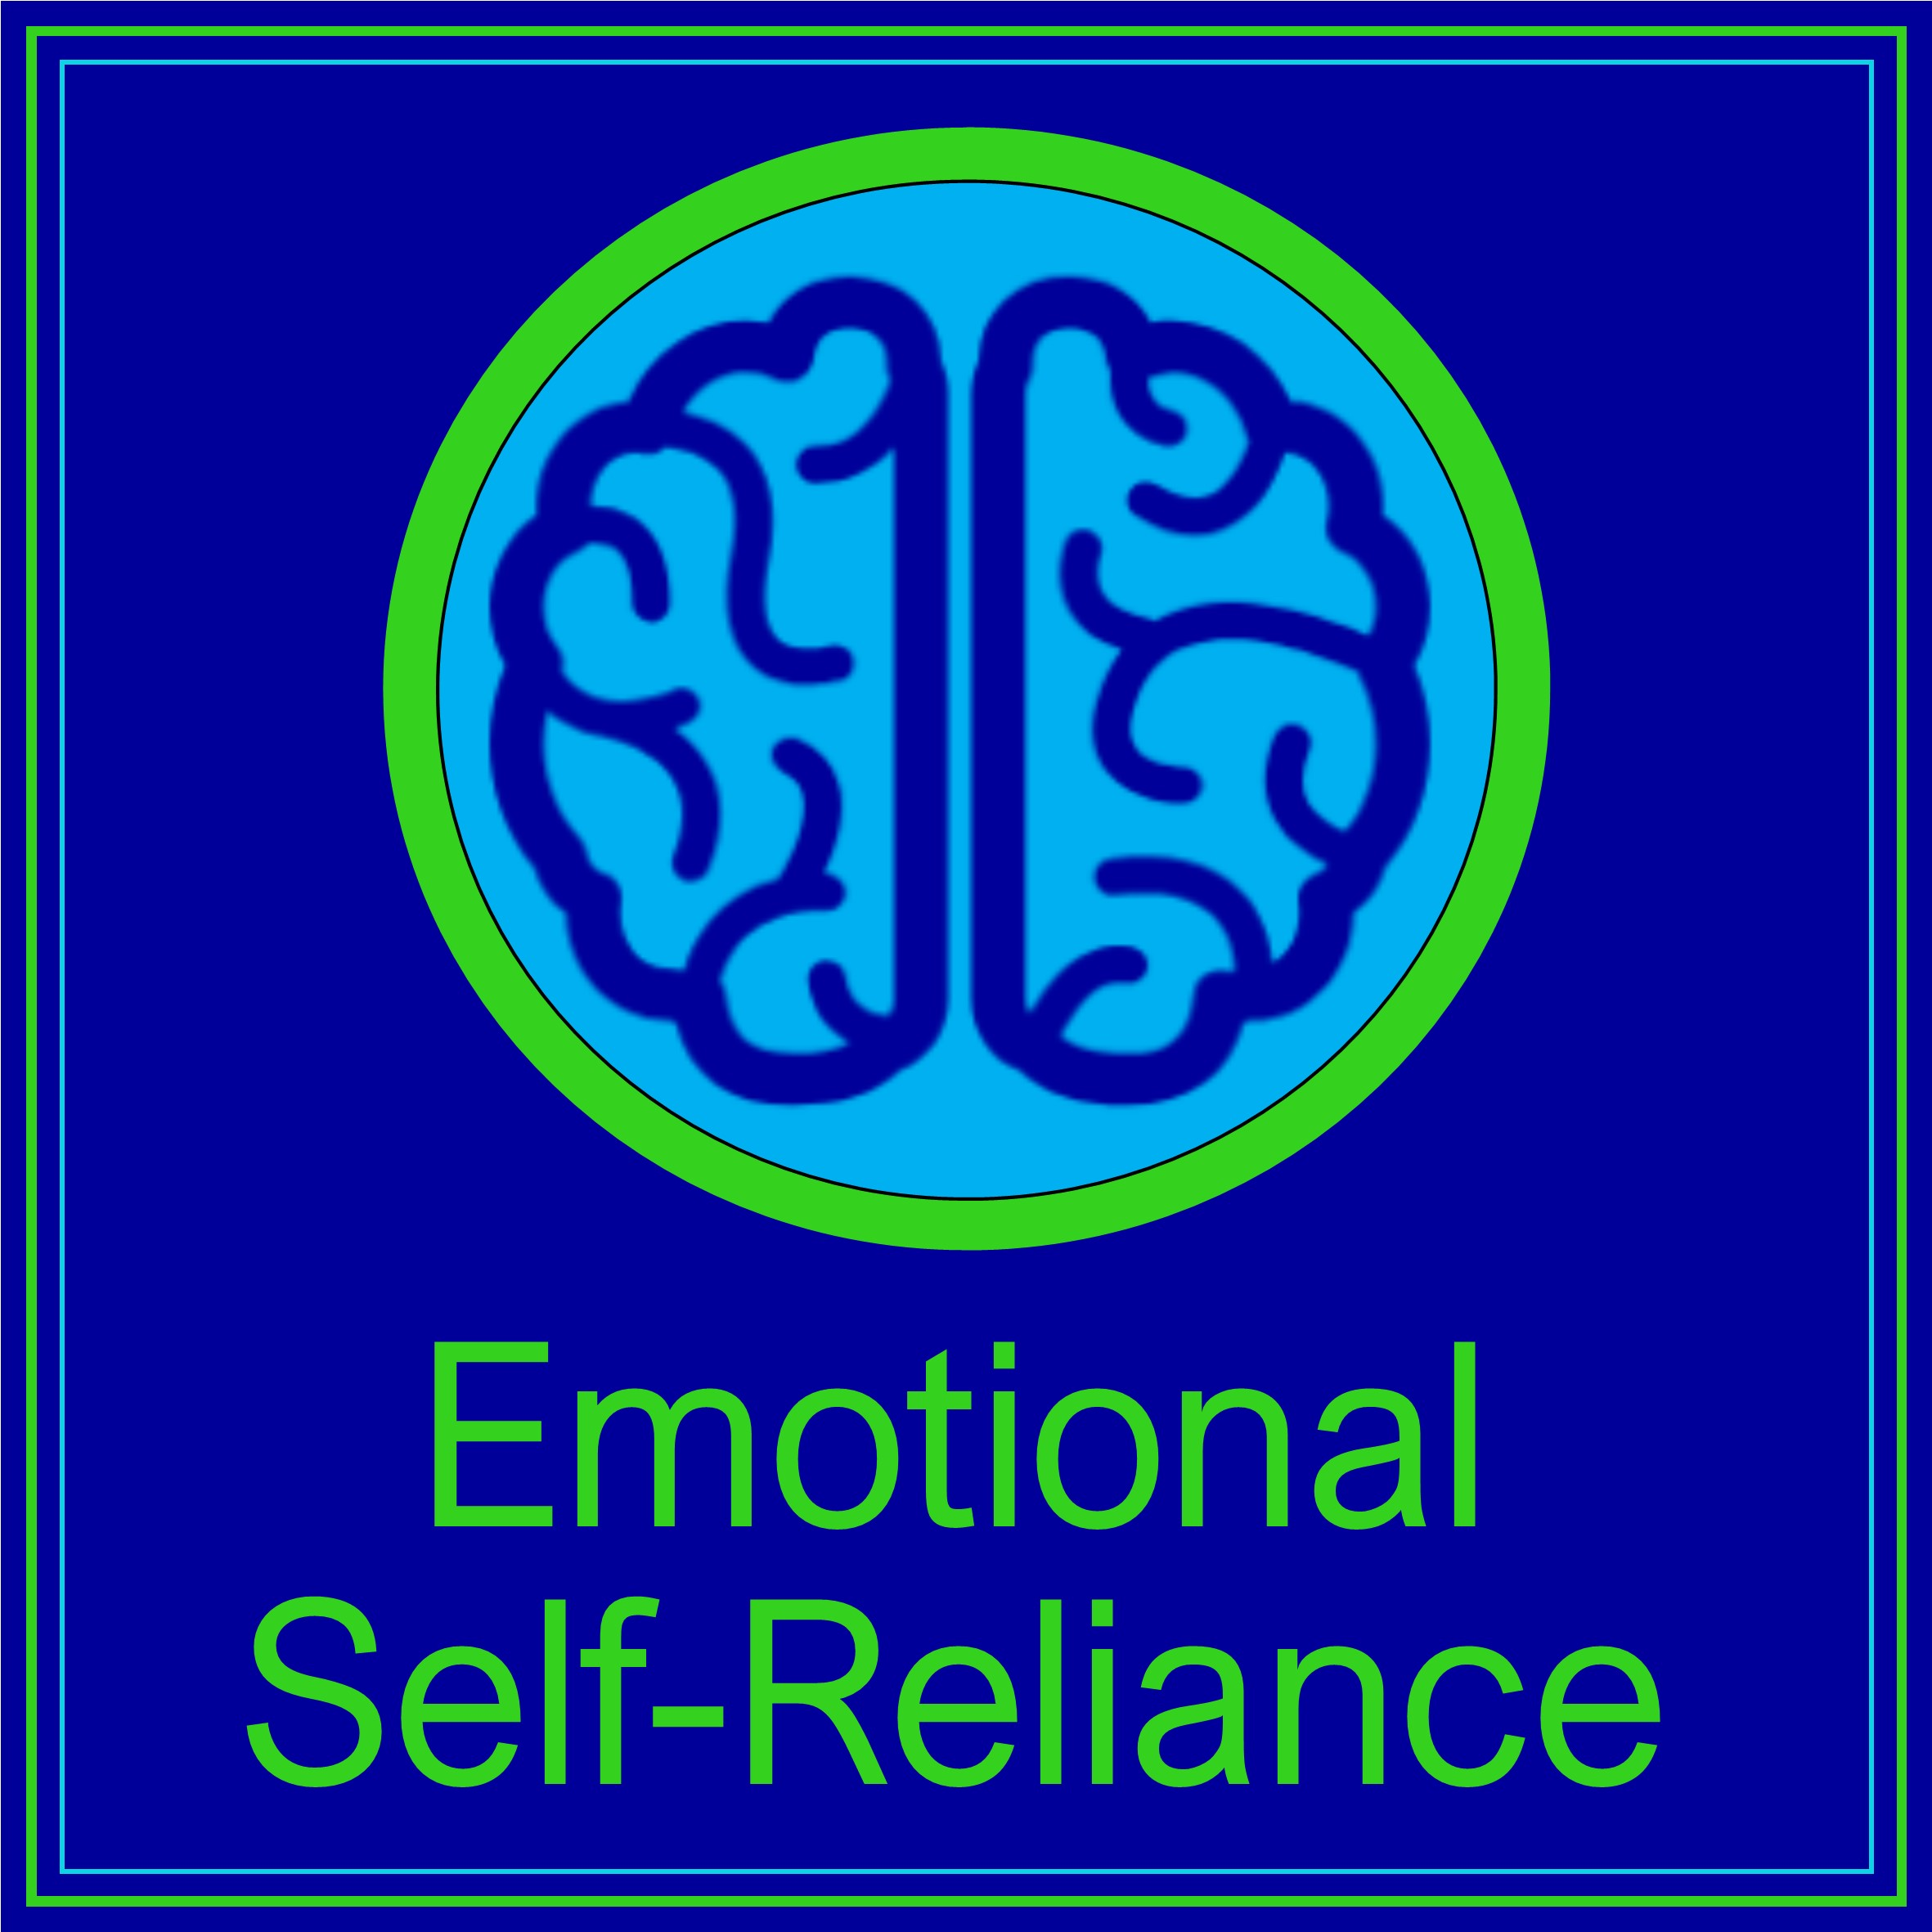 Emotional Self-Reliance